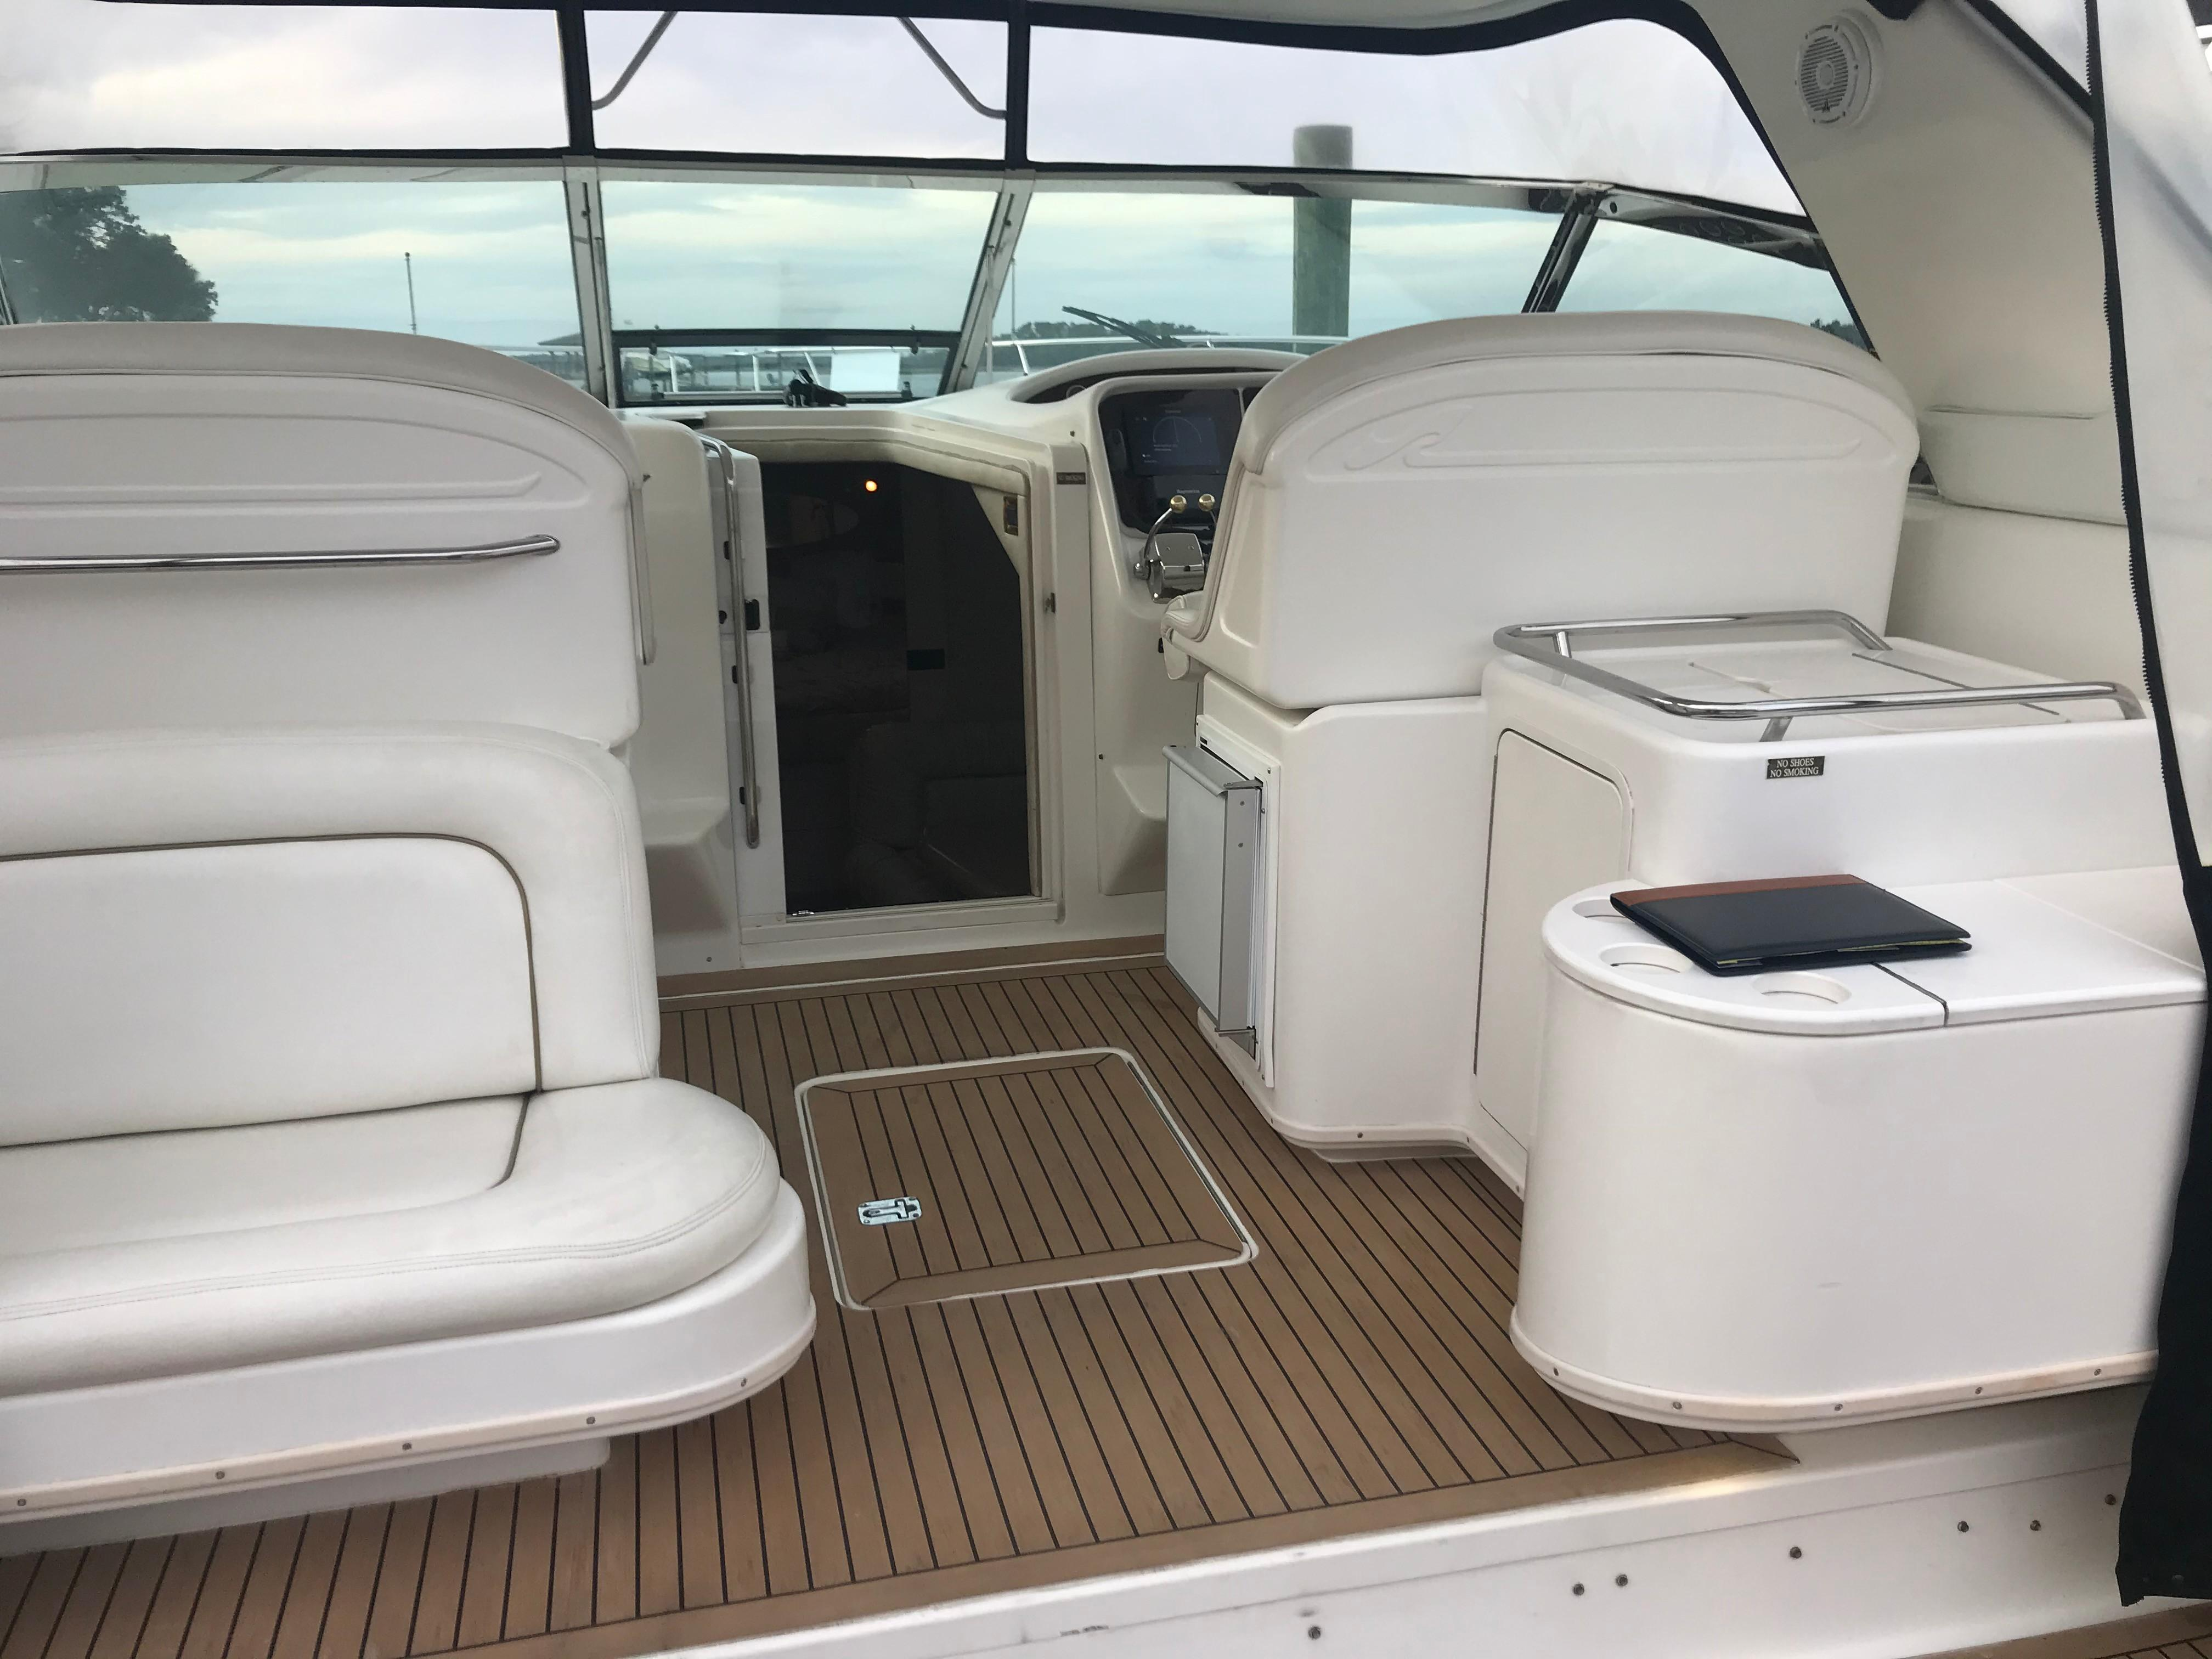 Sea Ray 370 Express Cruiser - Helm deck looking forward